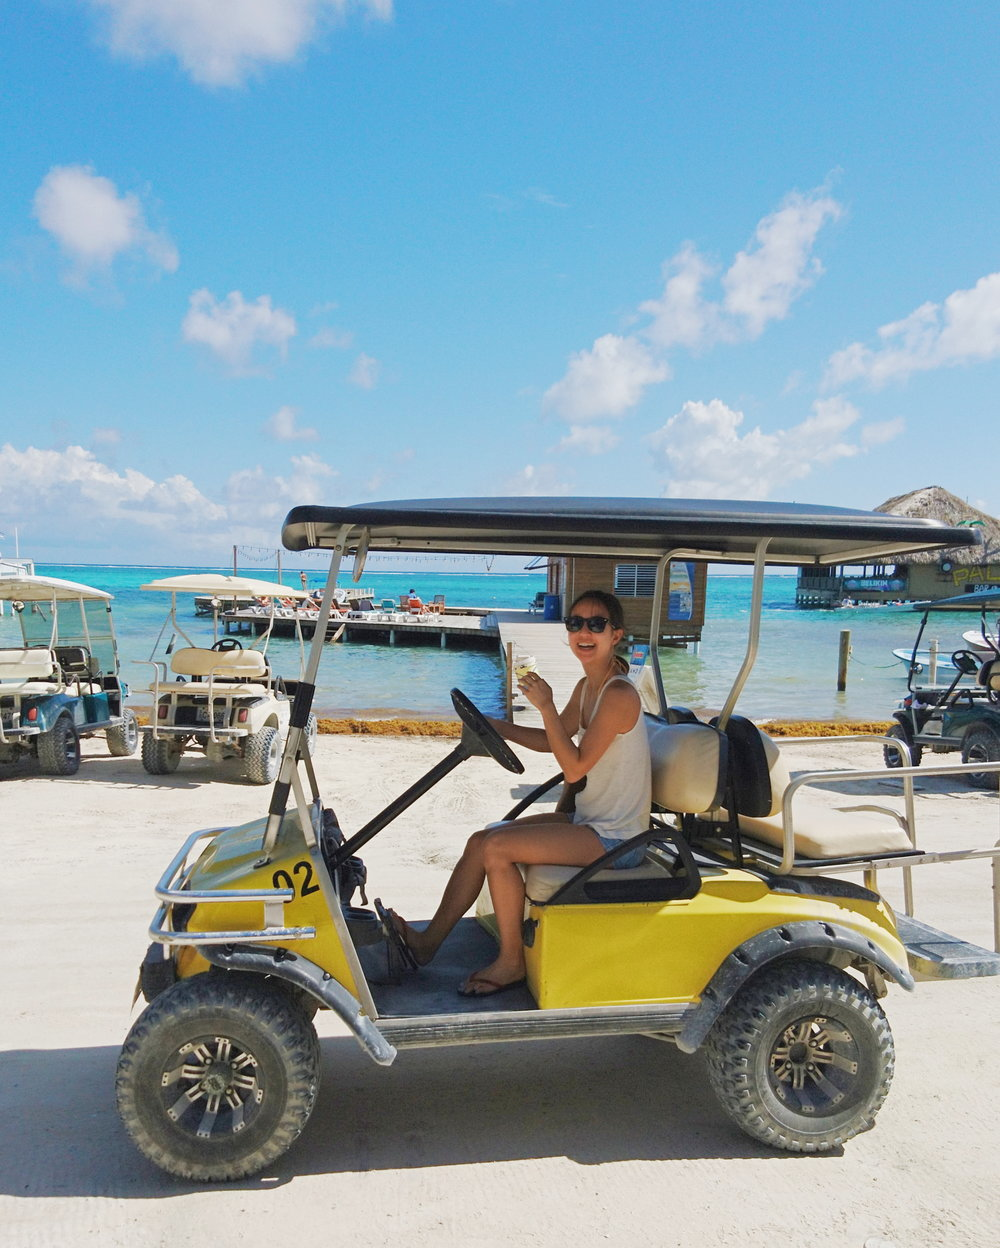 Driving a golf cart to get around town in San Pedro, Belize